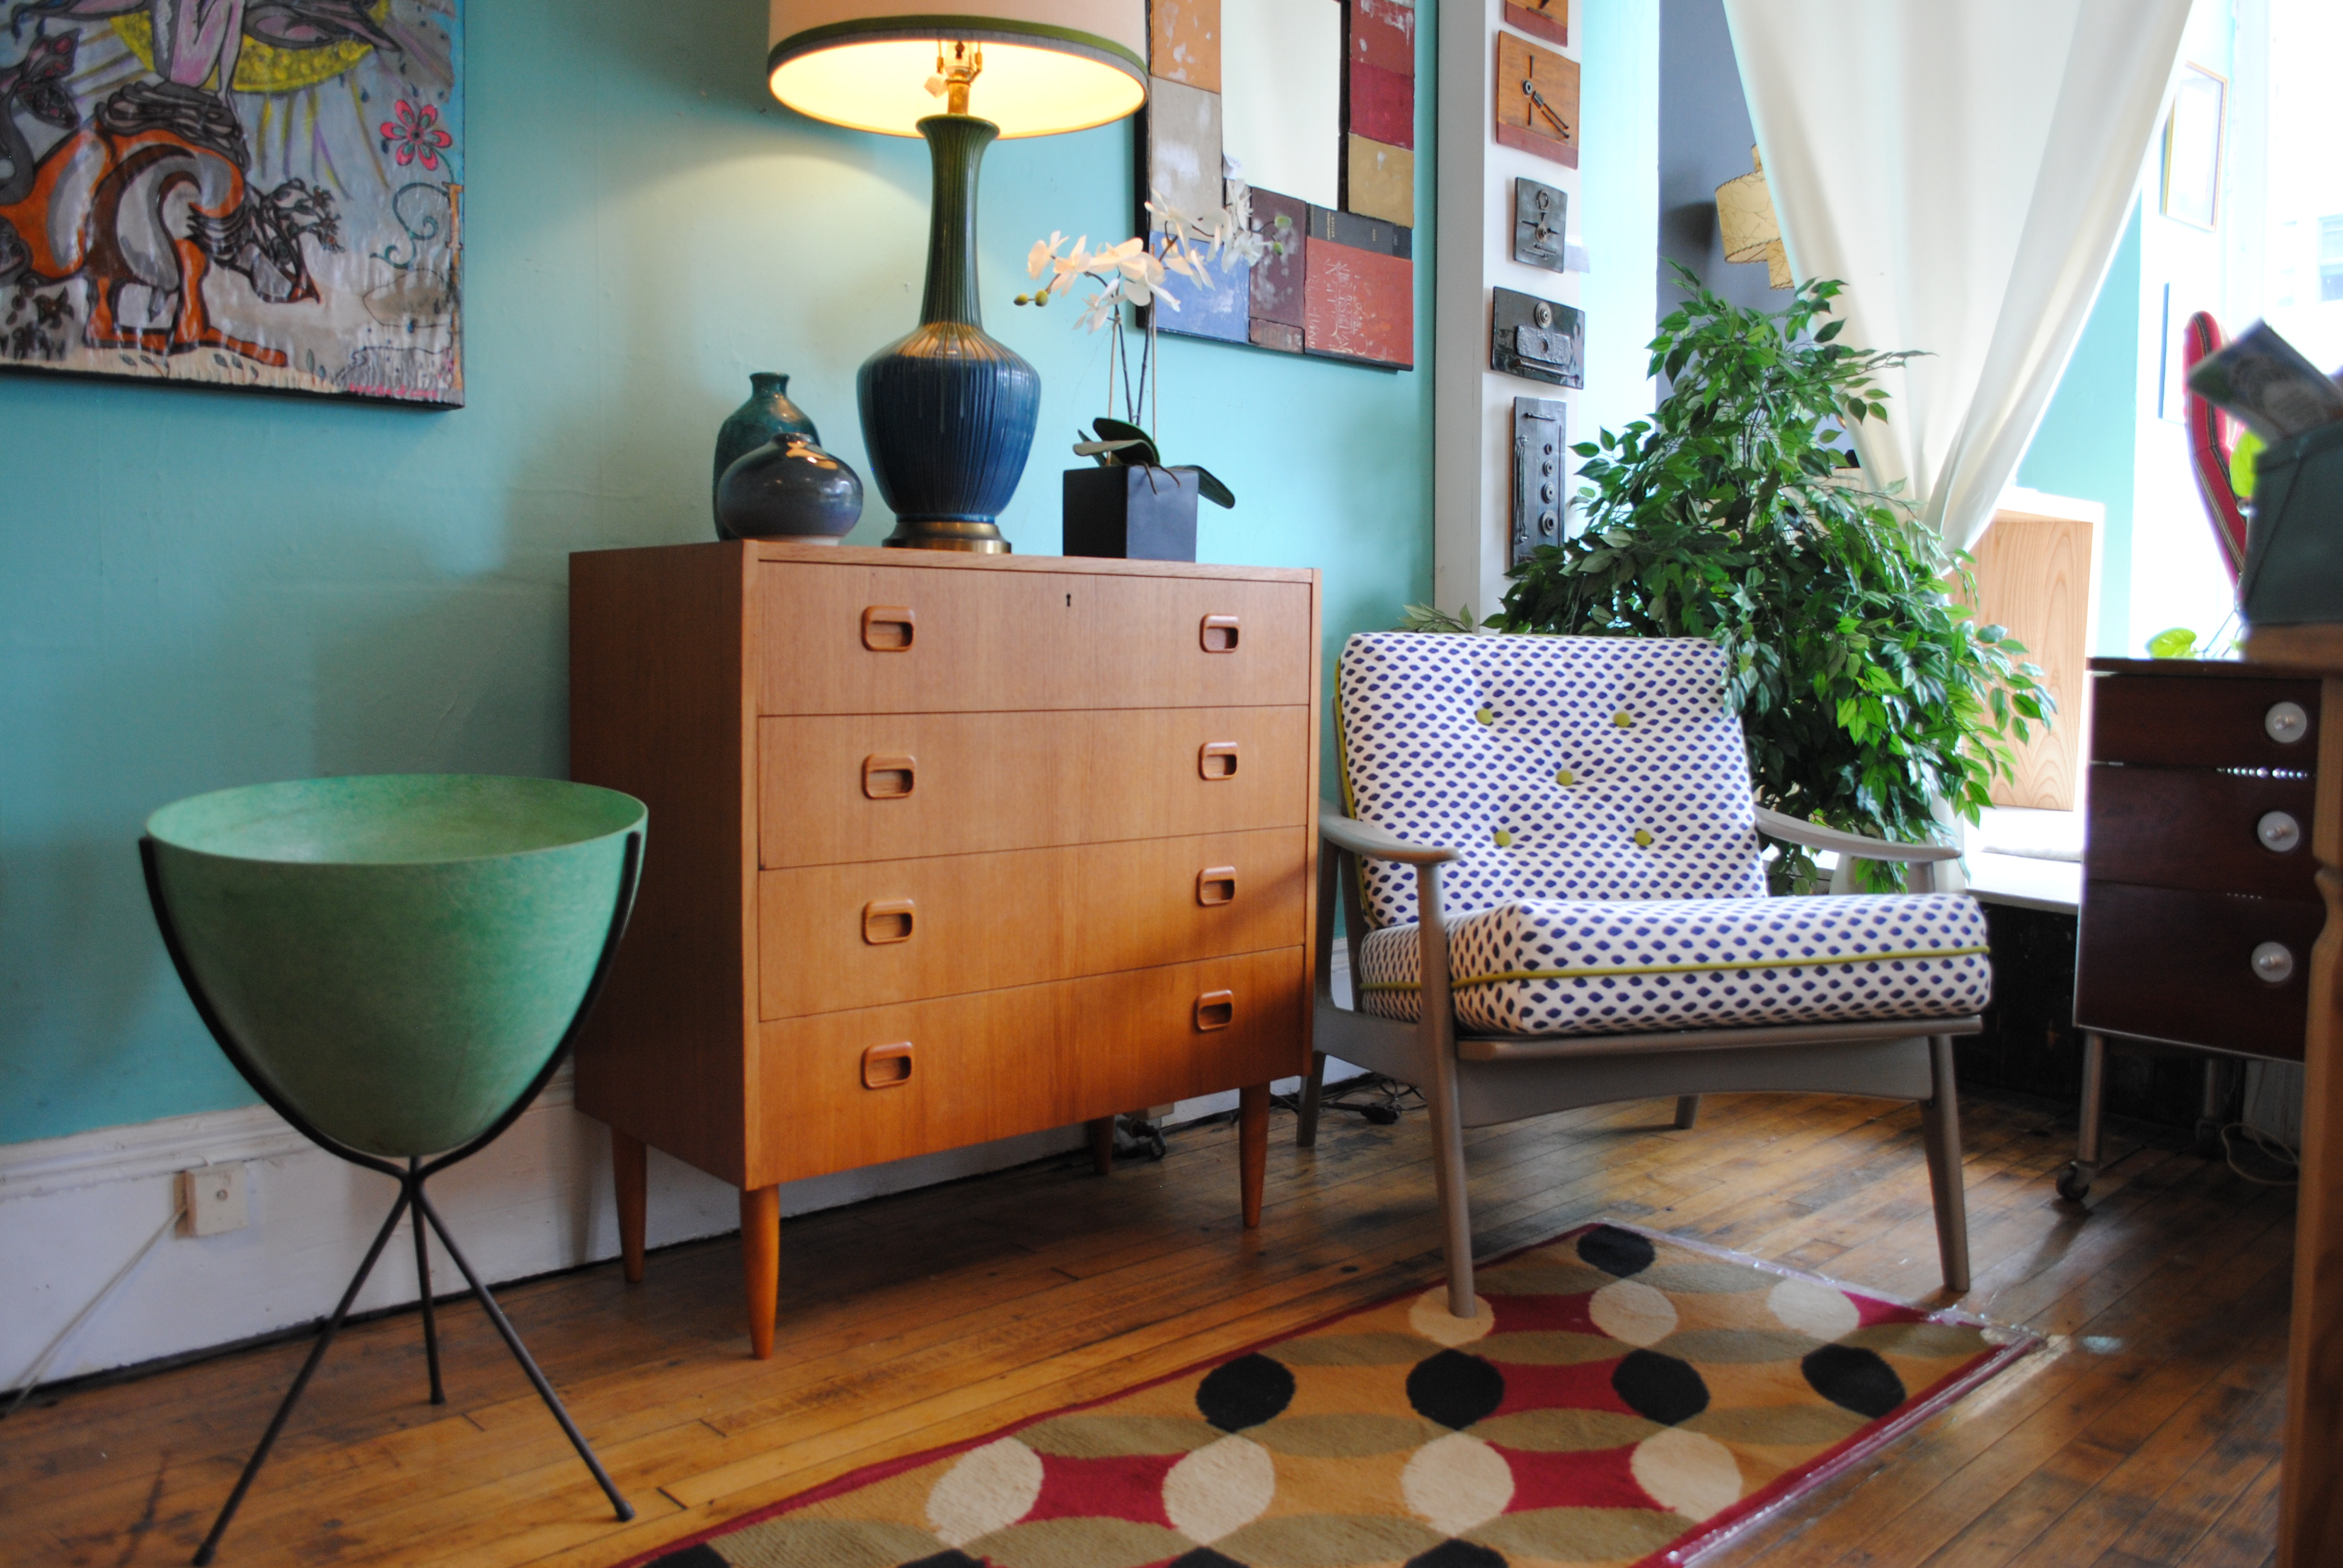 modern home furnishings) dsc. downtown pittsfield western massachusetts the berkshires  circa